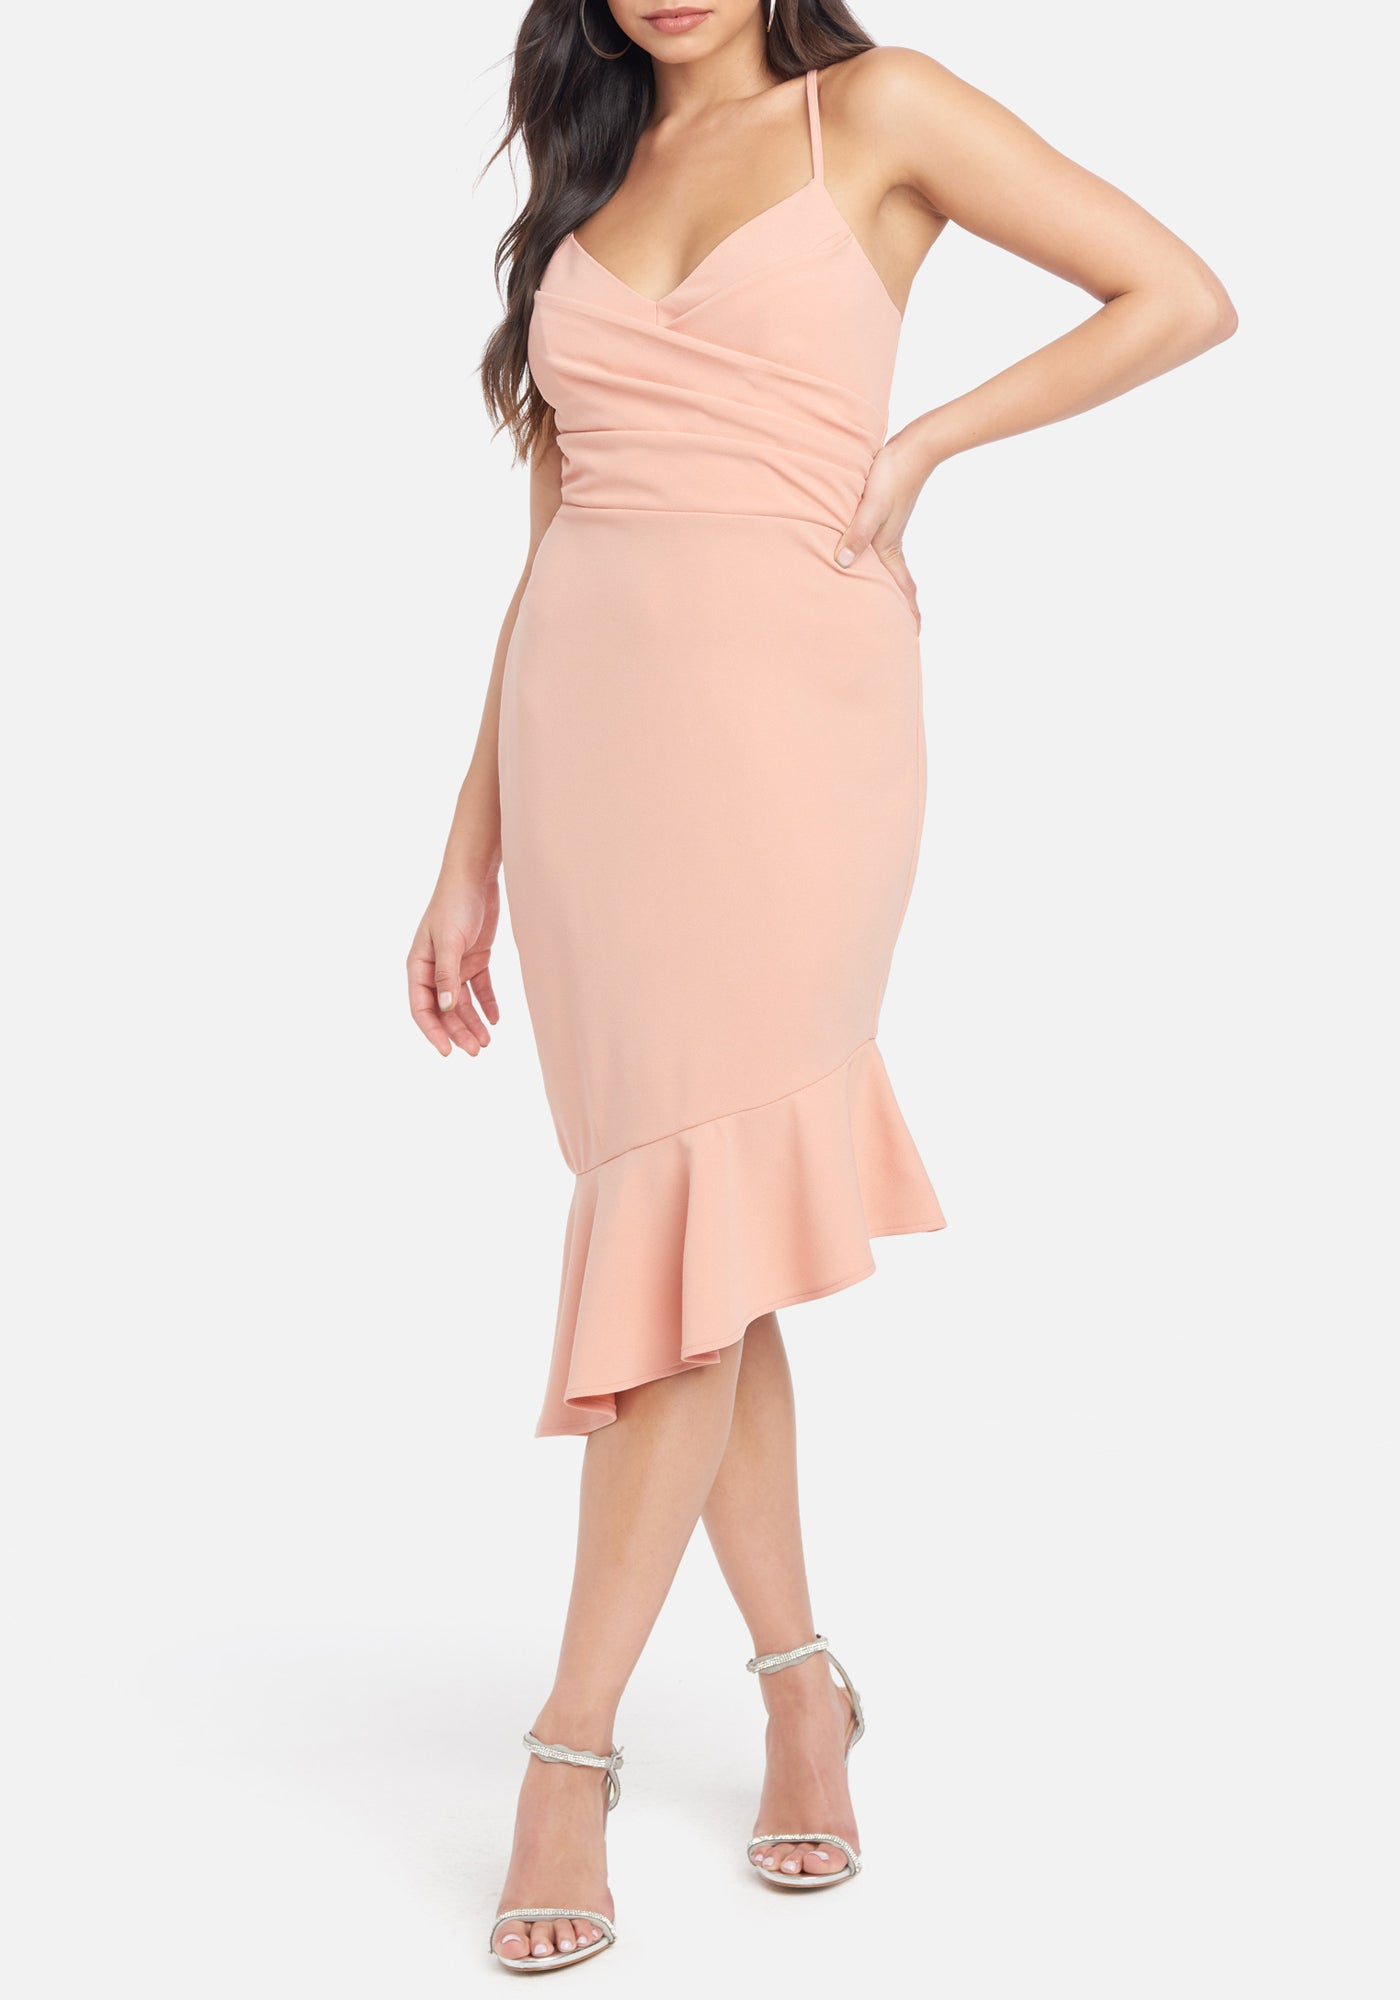 Bebe Women's Angled Flounce Midi Dress, Size XS in Sand Polyester